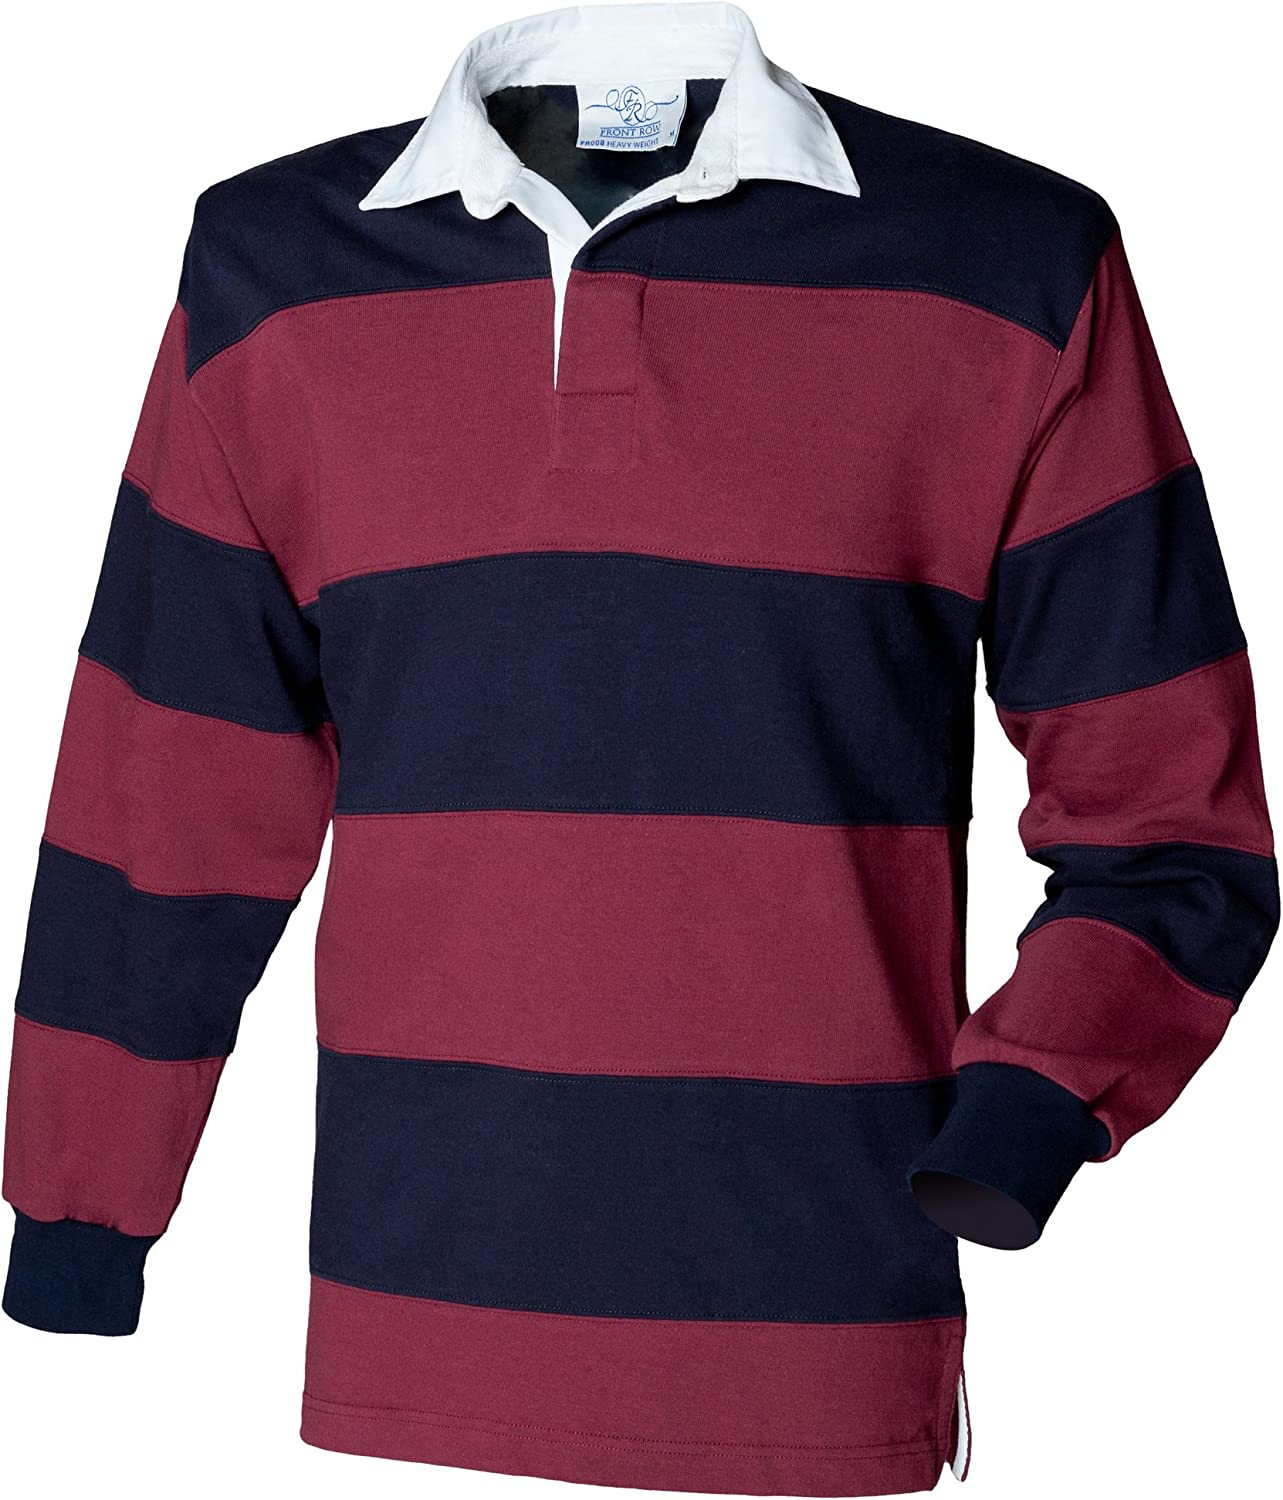 Front Row Sewn Stripe Long Sleeve Rugby Shirt